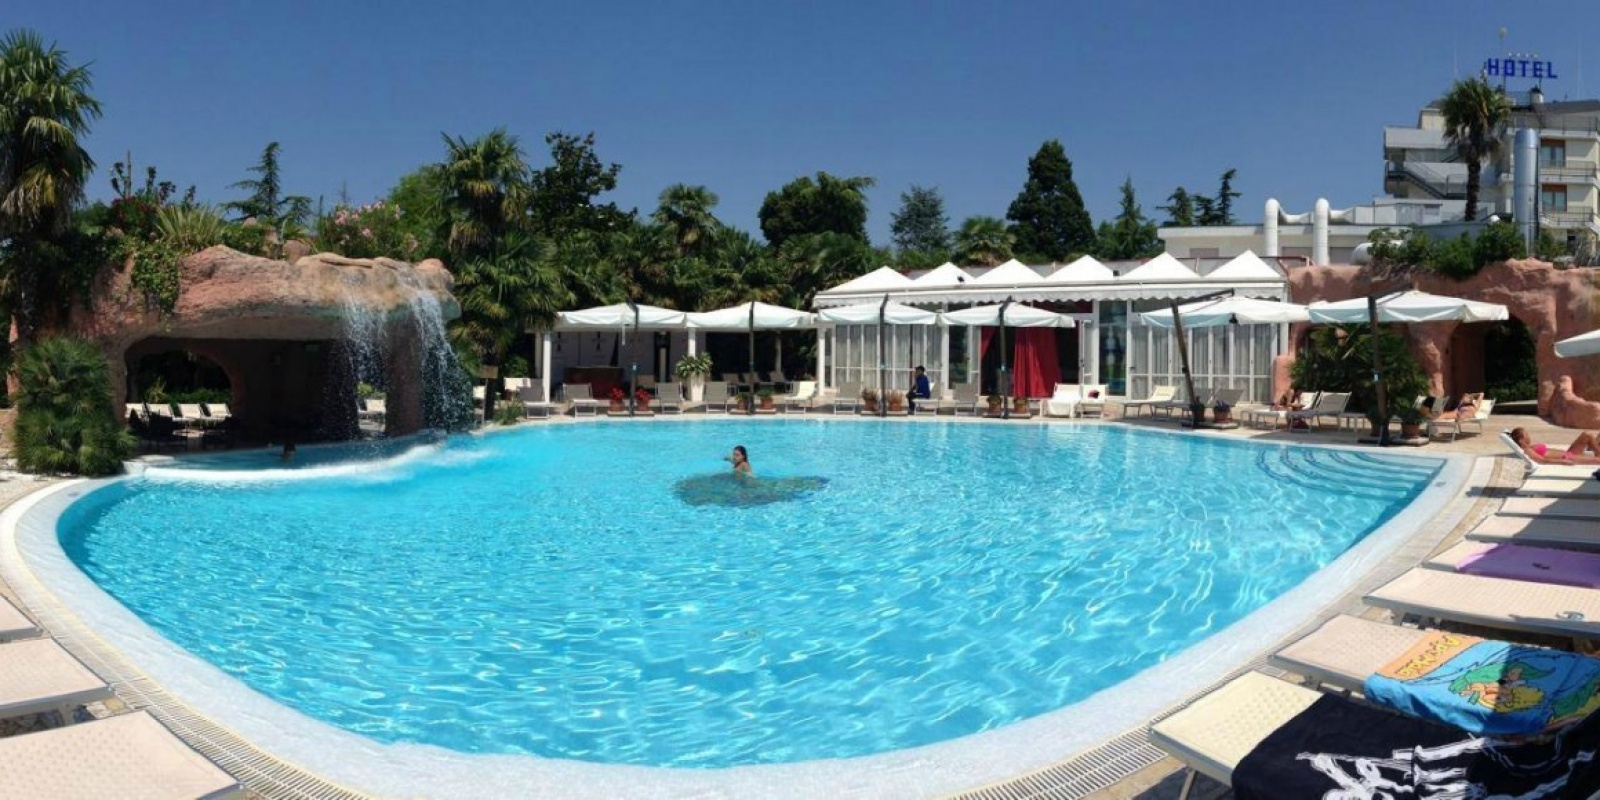 Estate 2015 le piscine all 39 aperto a treviso e provincia for Borso del grappa piscine